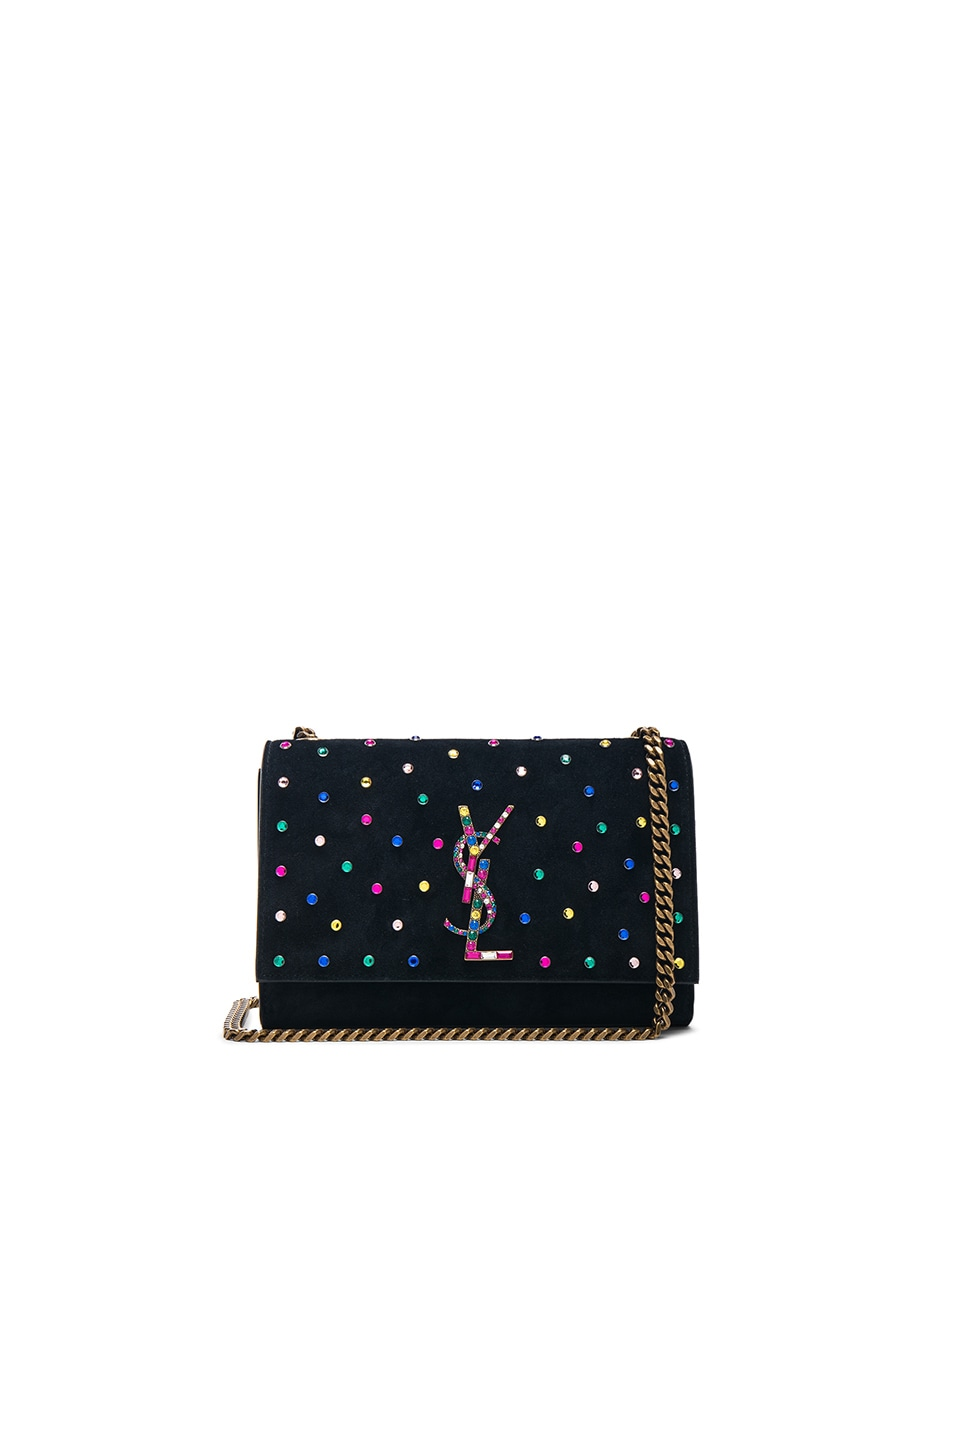 23ad2da8fcad Image 1 of Saint Laurent Small Crystal Embellished Suede Monogramme Kate  Chain Bag in Black